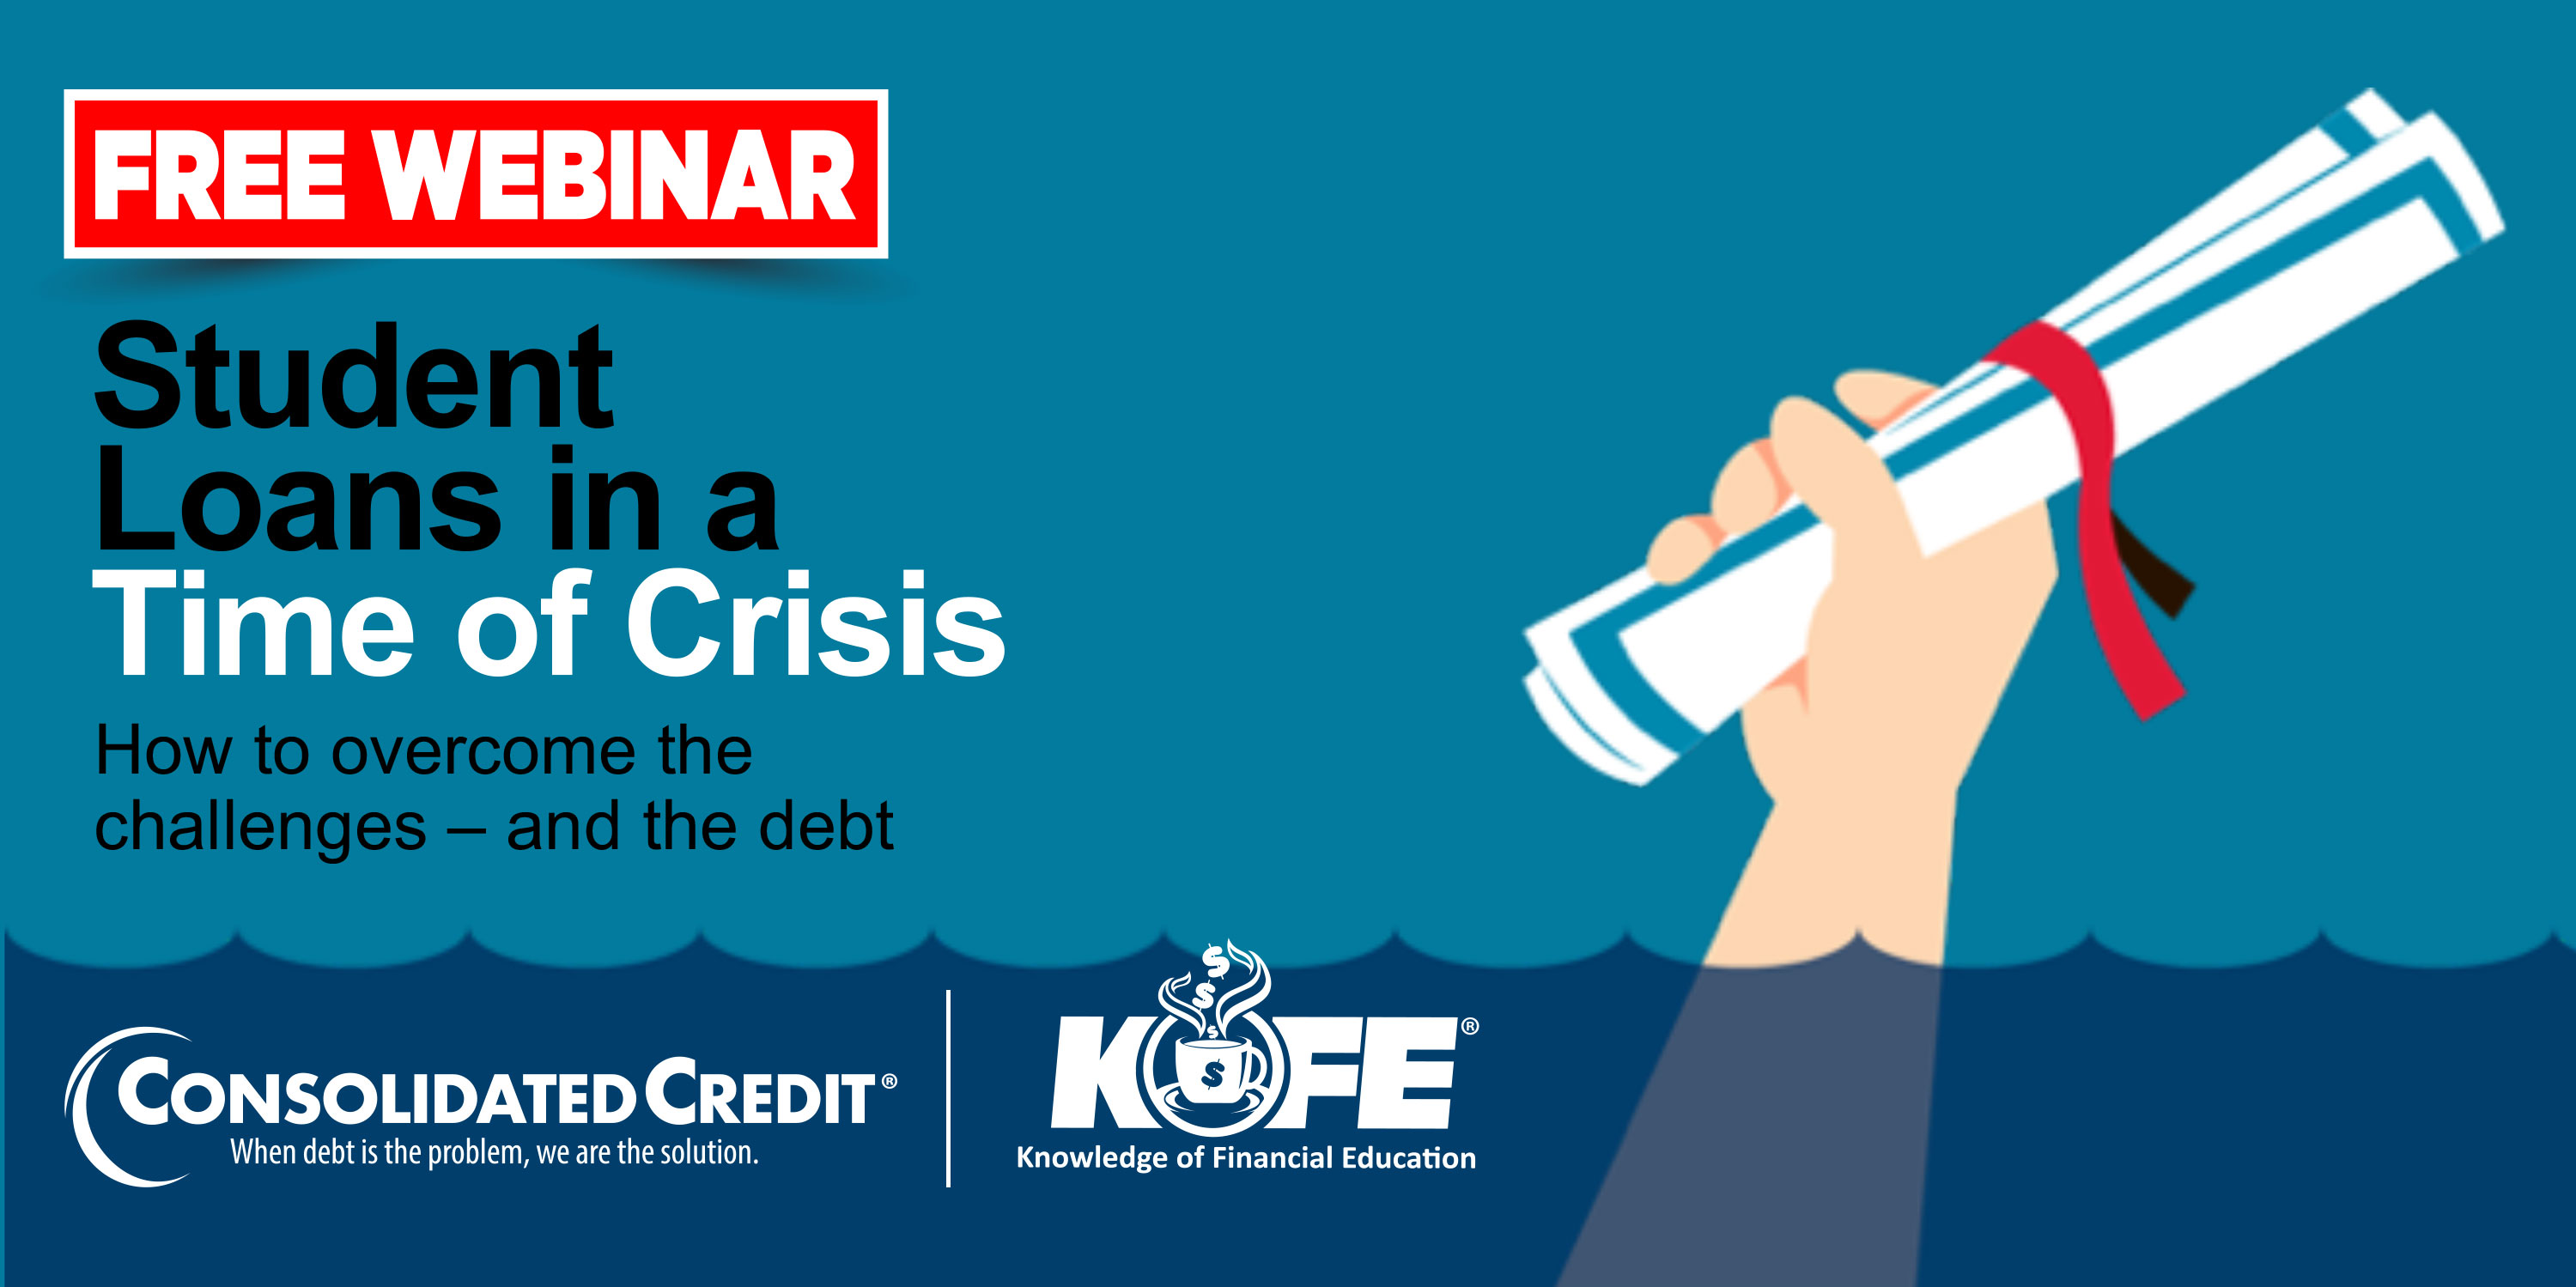 Free Webinar: Student Loans in a Time of Crisis - How to Overcome the Challenges and the Debt